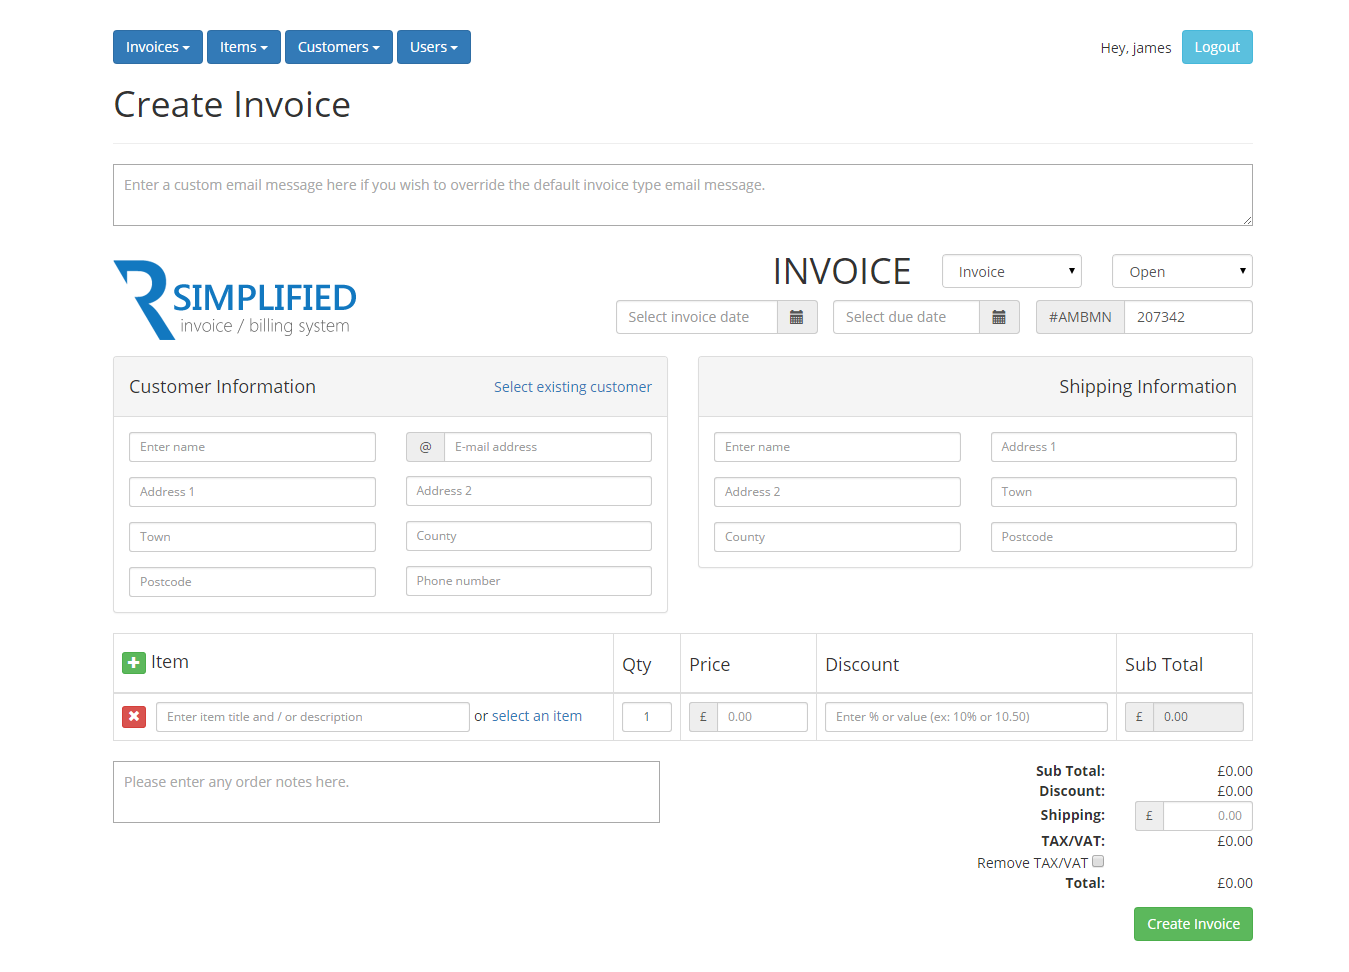 Soulfulpowerus  Surprising Simplified Php Invoice  Billing System By Rebootdigitaluk  With Handsome  Createinvoicepng  With Adorable Global Depositary Receipt Also Cheque Receipt Template In Addition Example Of Receipts And Example Of A Rent Receipt As Well As Sample Of A Receipt Of Payment Additionally Apcoa Vat Receipts From Codecanyonnet With Soulfulpowerus  Handsome Simplified Php Invoice  Billing System By Rebootdigitaluk  With Adorable  Createinvoicepng  And Surprising Global Depositary Receipt Also Cheque Receipt Template In Addition Example Of Receipts From Codecanyonnet